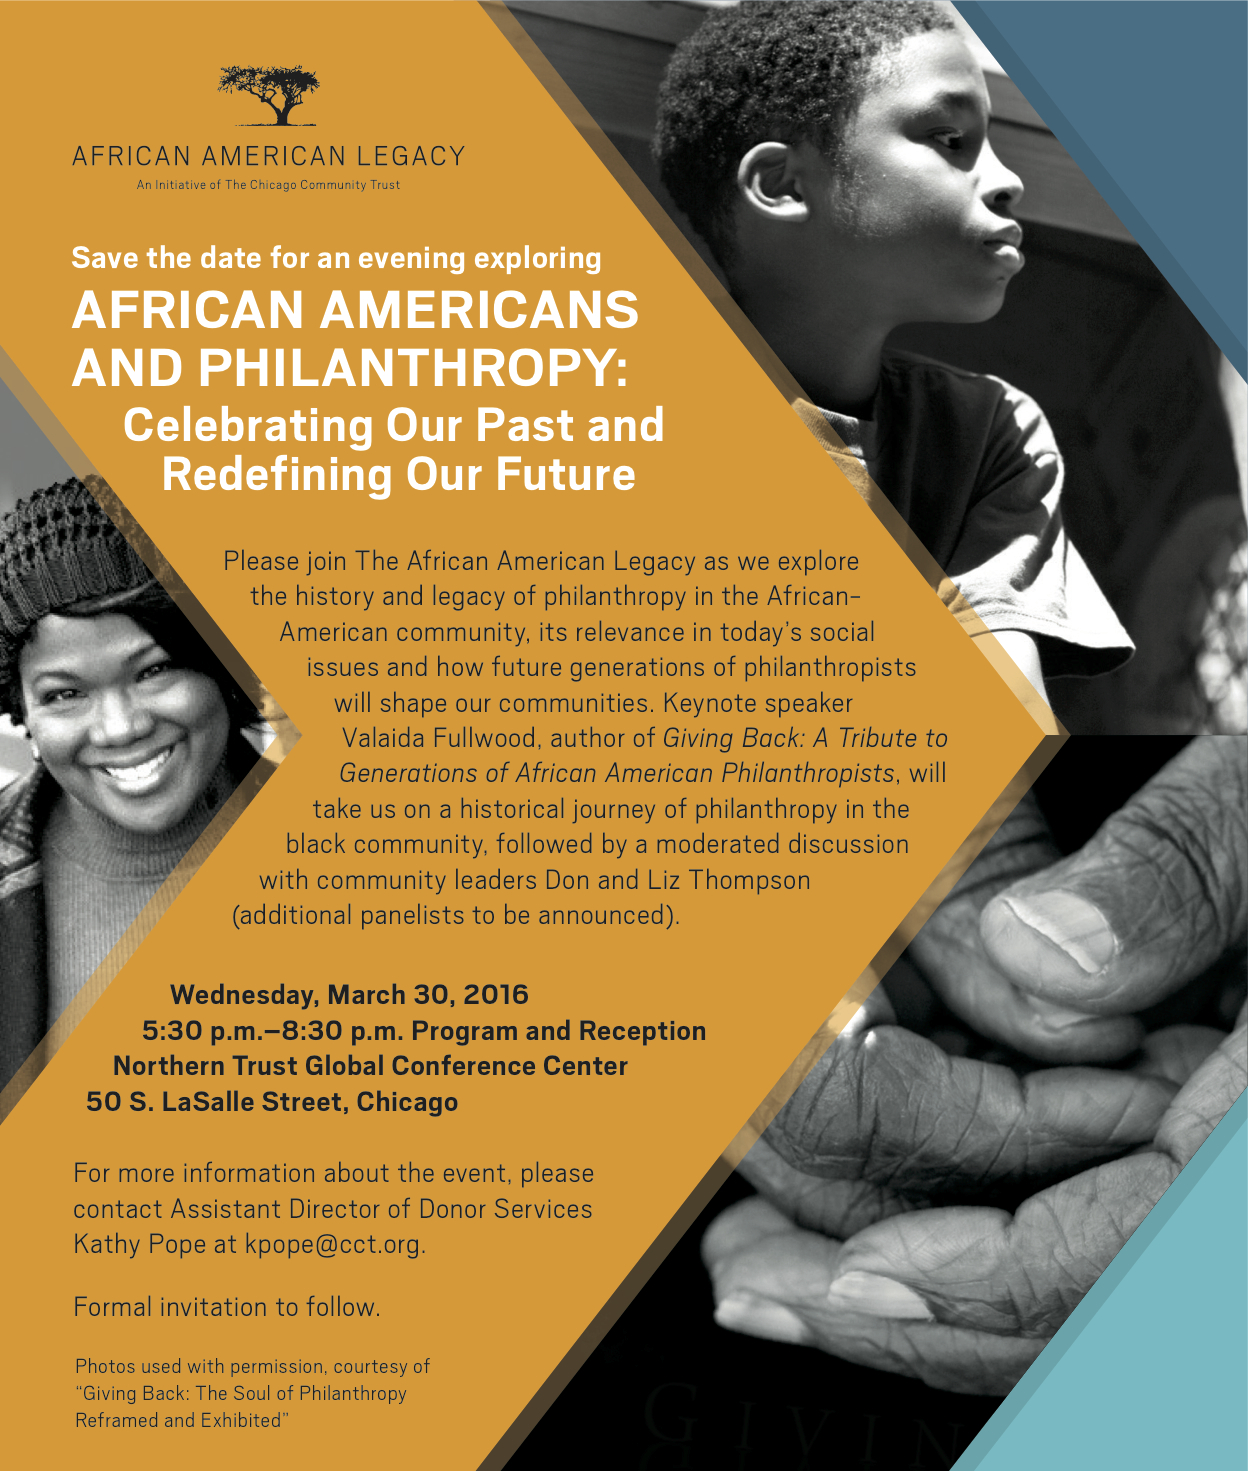 Celebrating Philanthropy with African American Legacy jpg